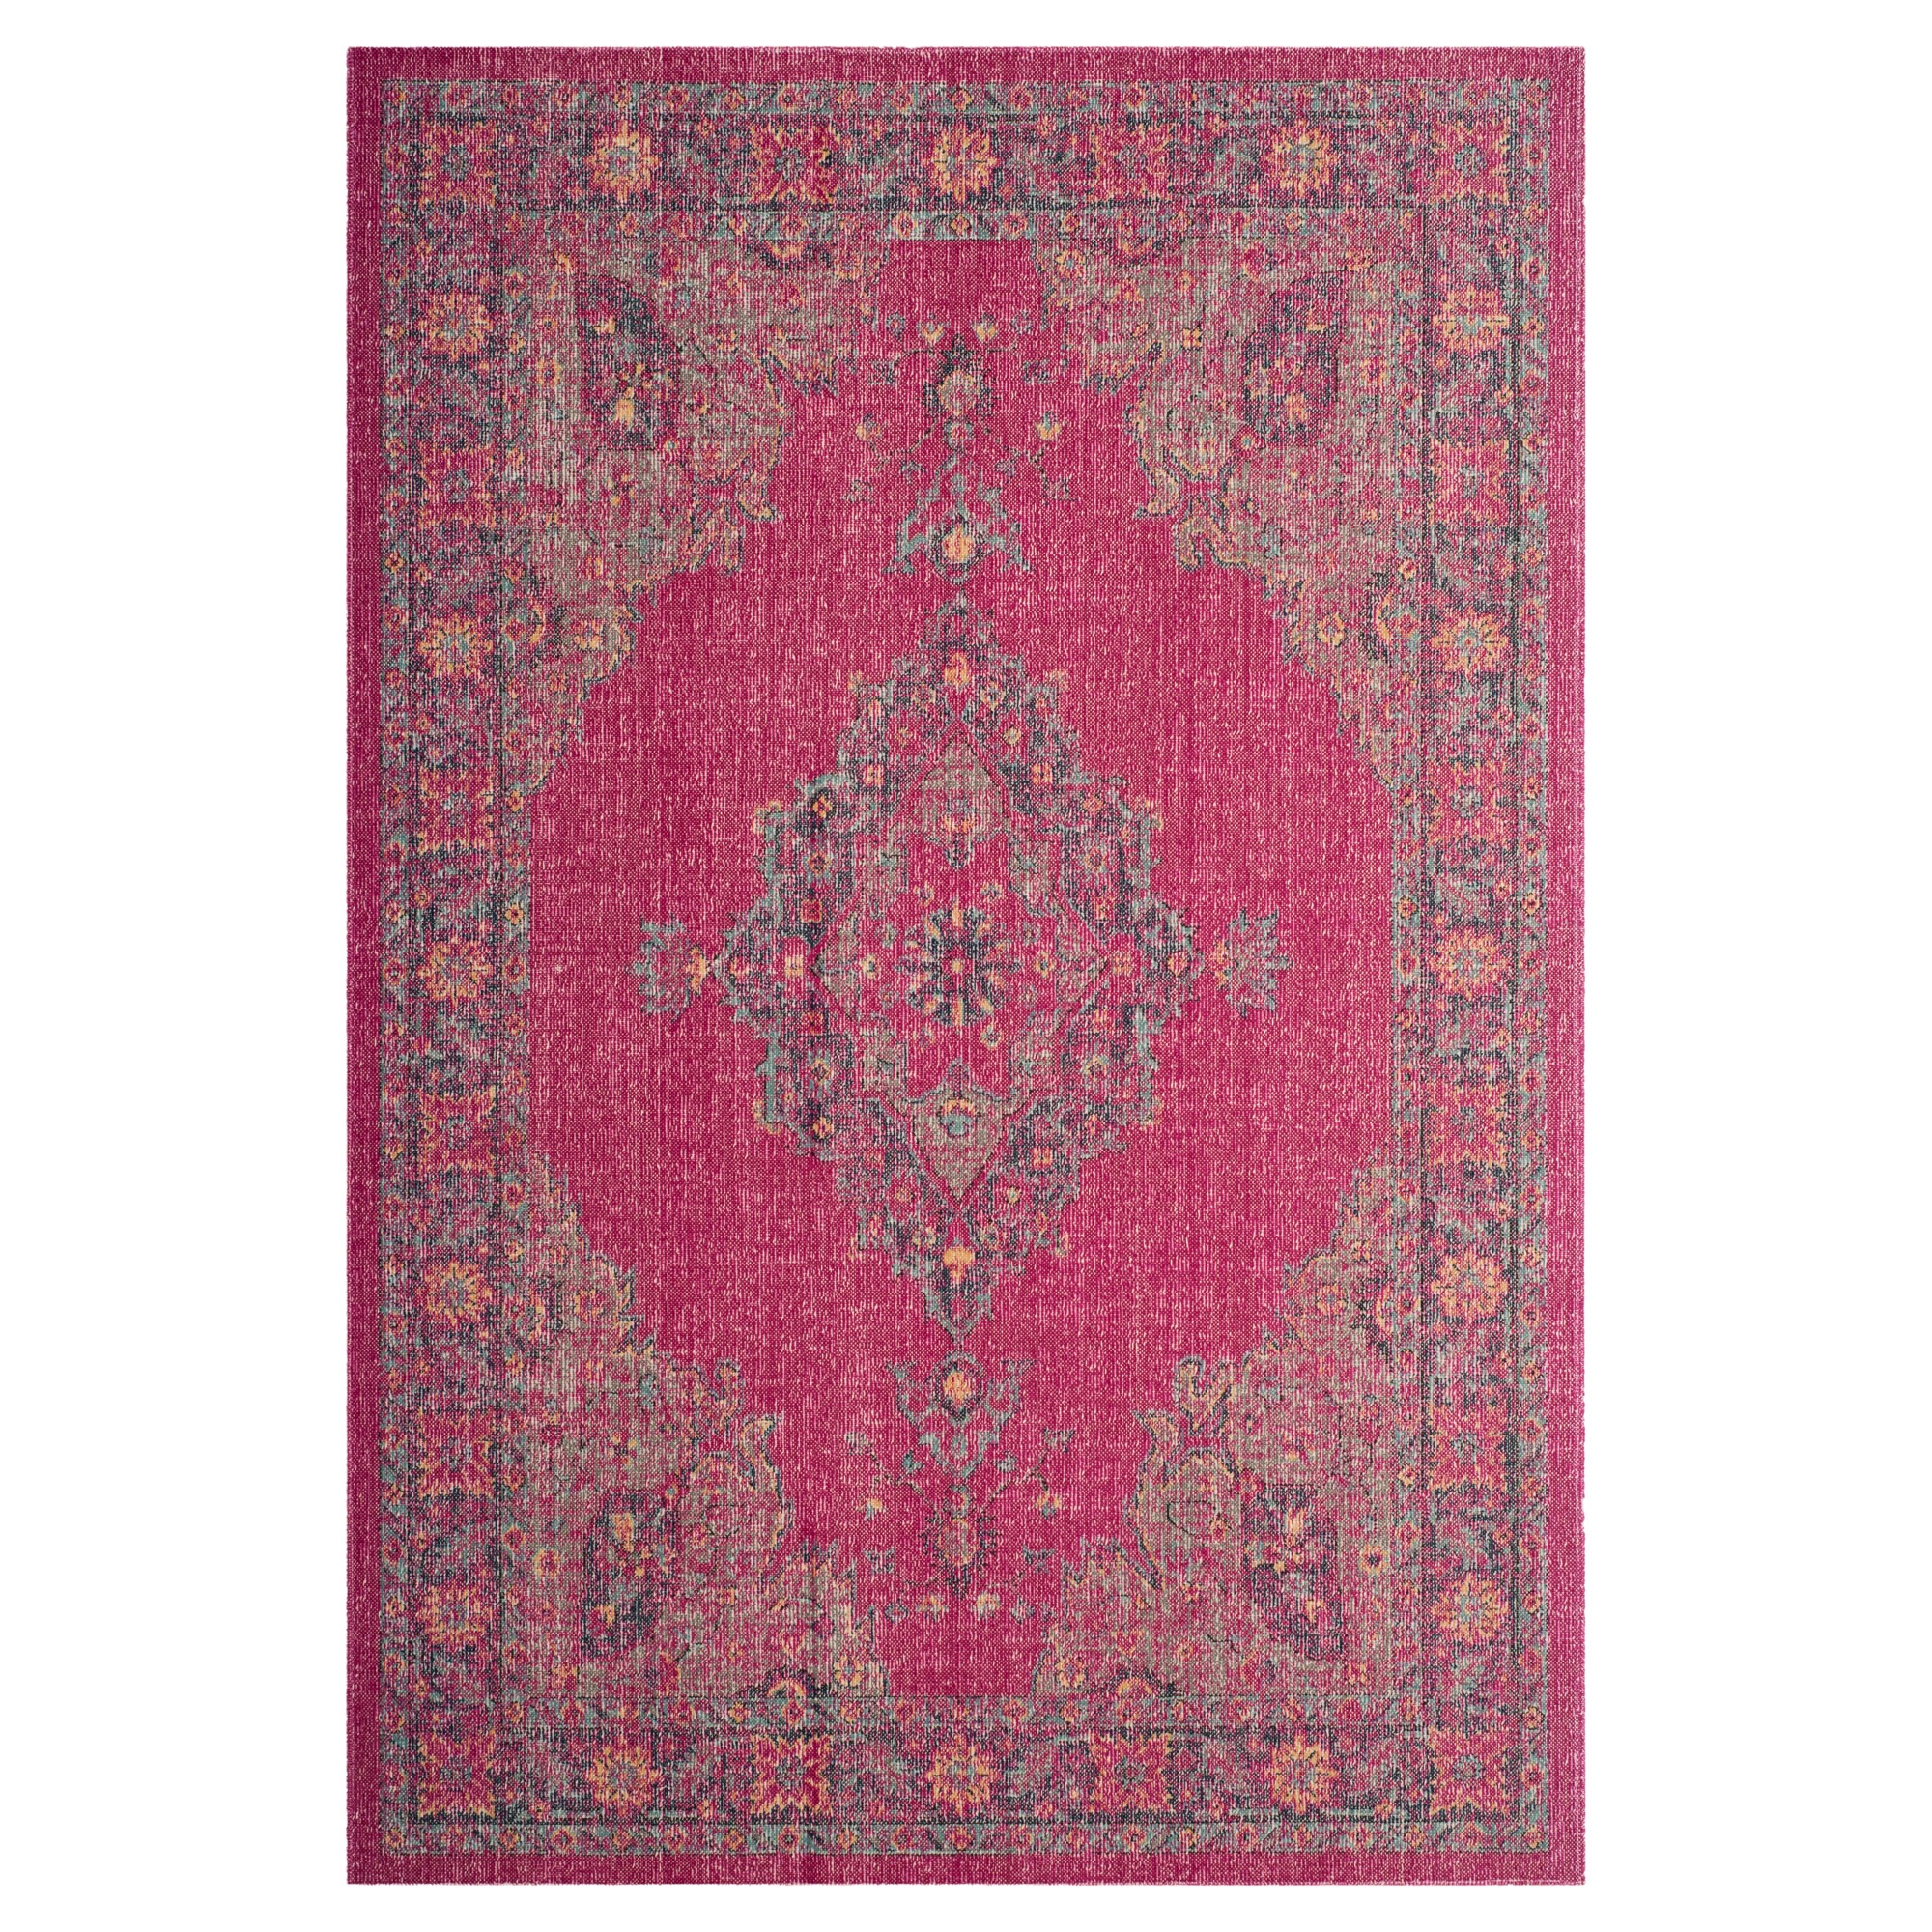 Fuchsia/Navy (Pink/Blue) Medallion Loomed Accent Rug 3'3